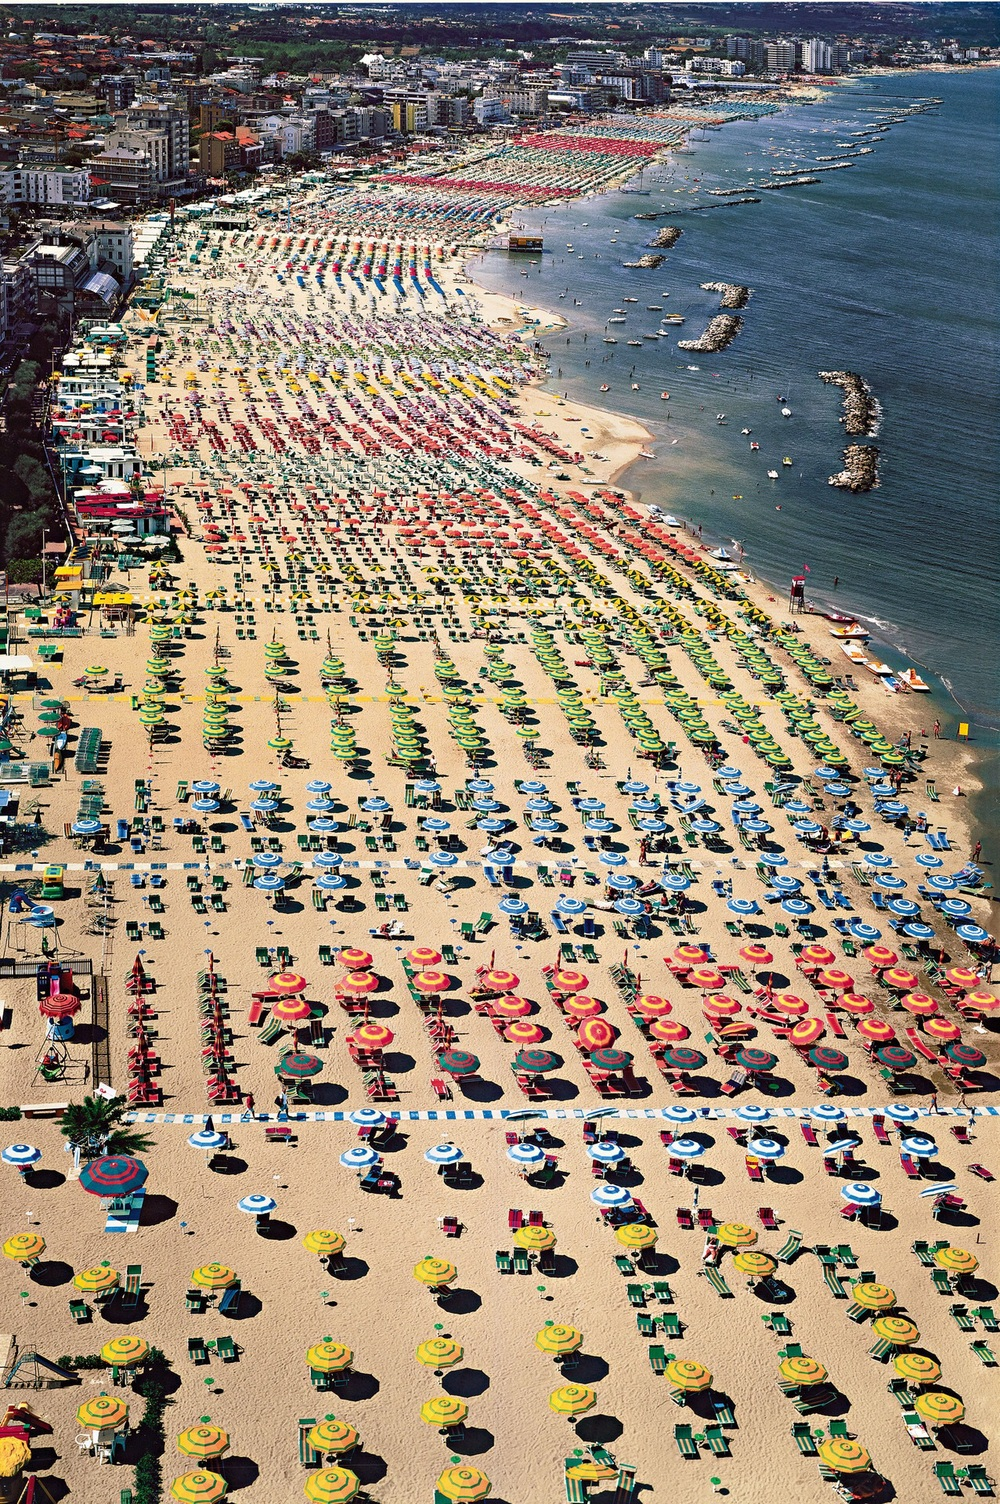 Rimini   2003  C-print mounted on Plexiglas   298 x 207 cm